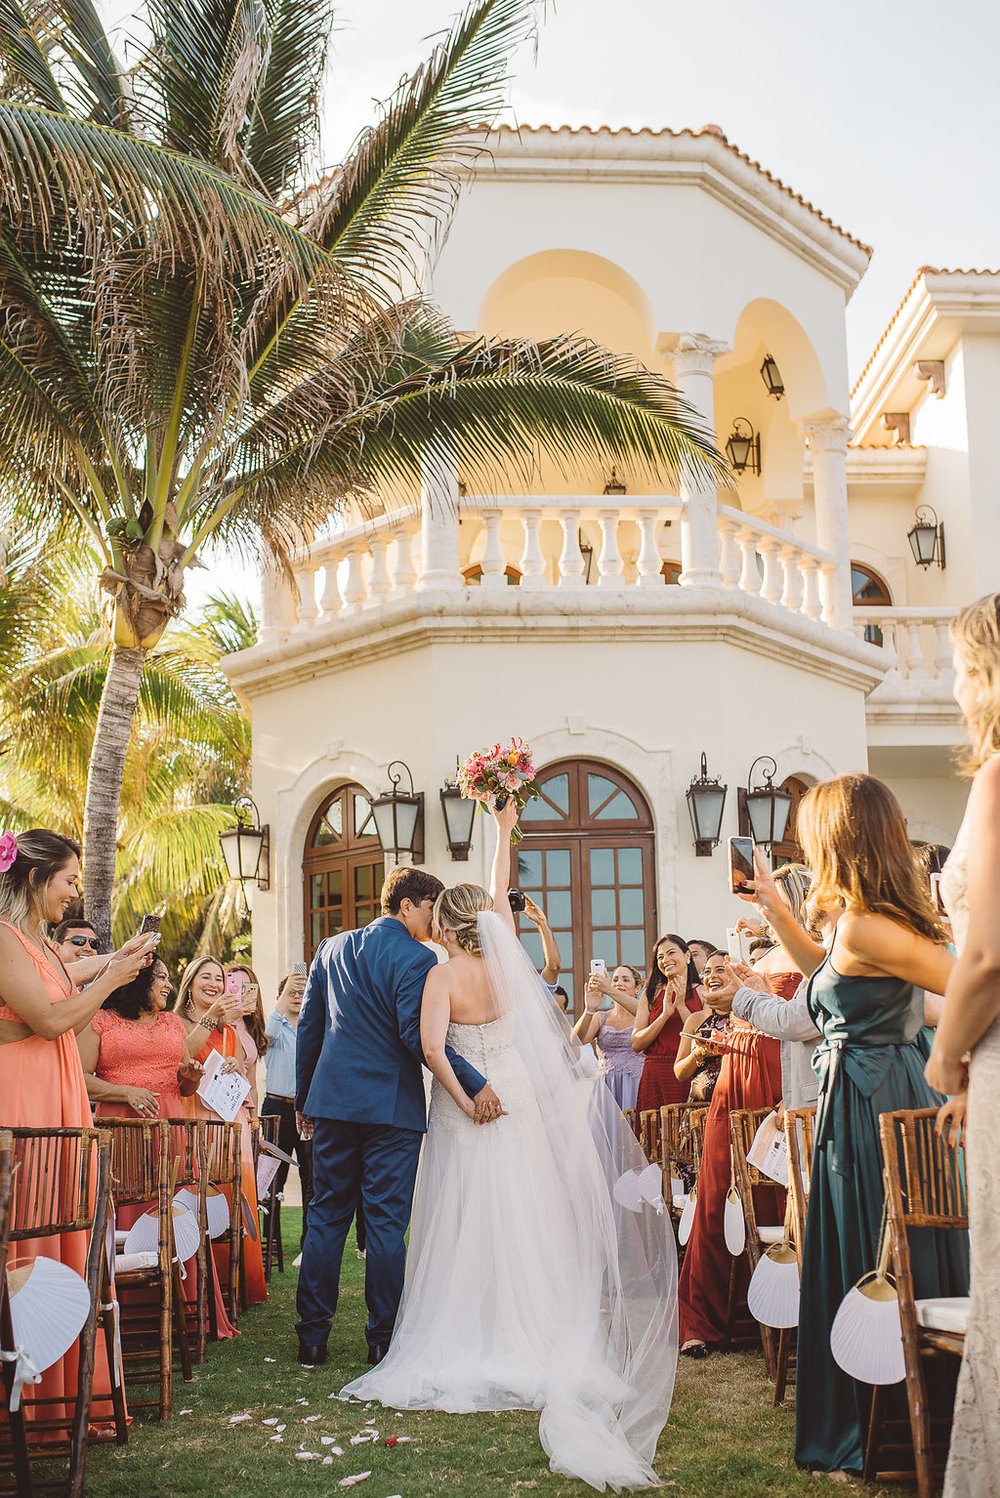 cancun-destination-wedding-mexico-villa-la-joya-29.jpg